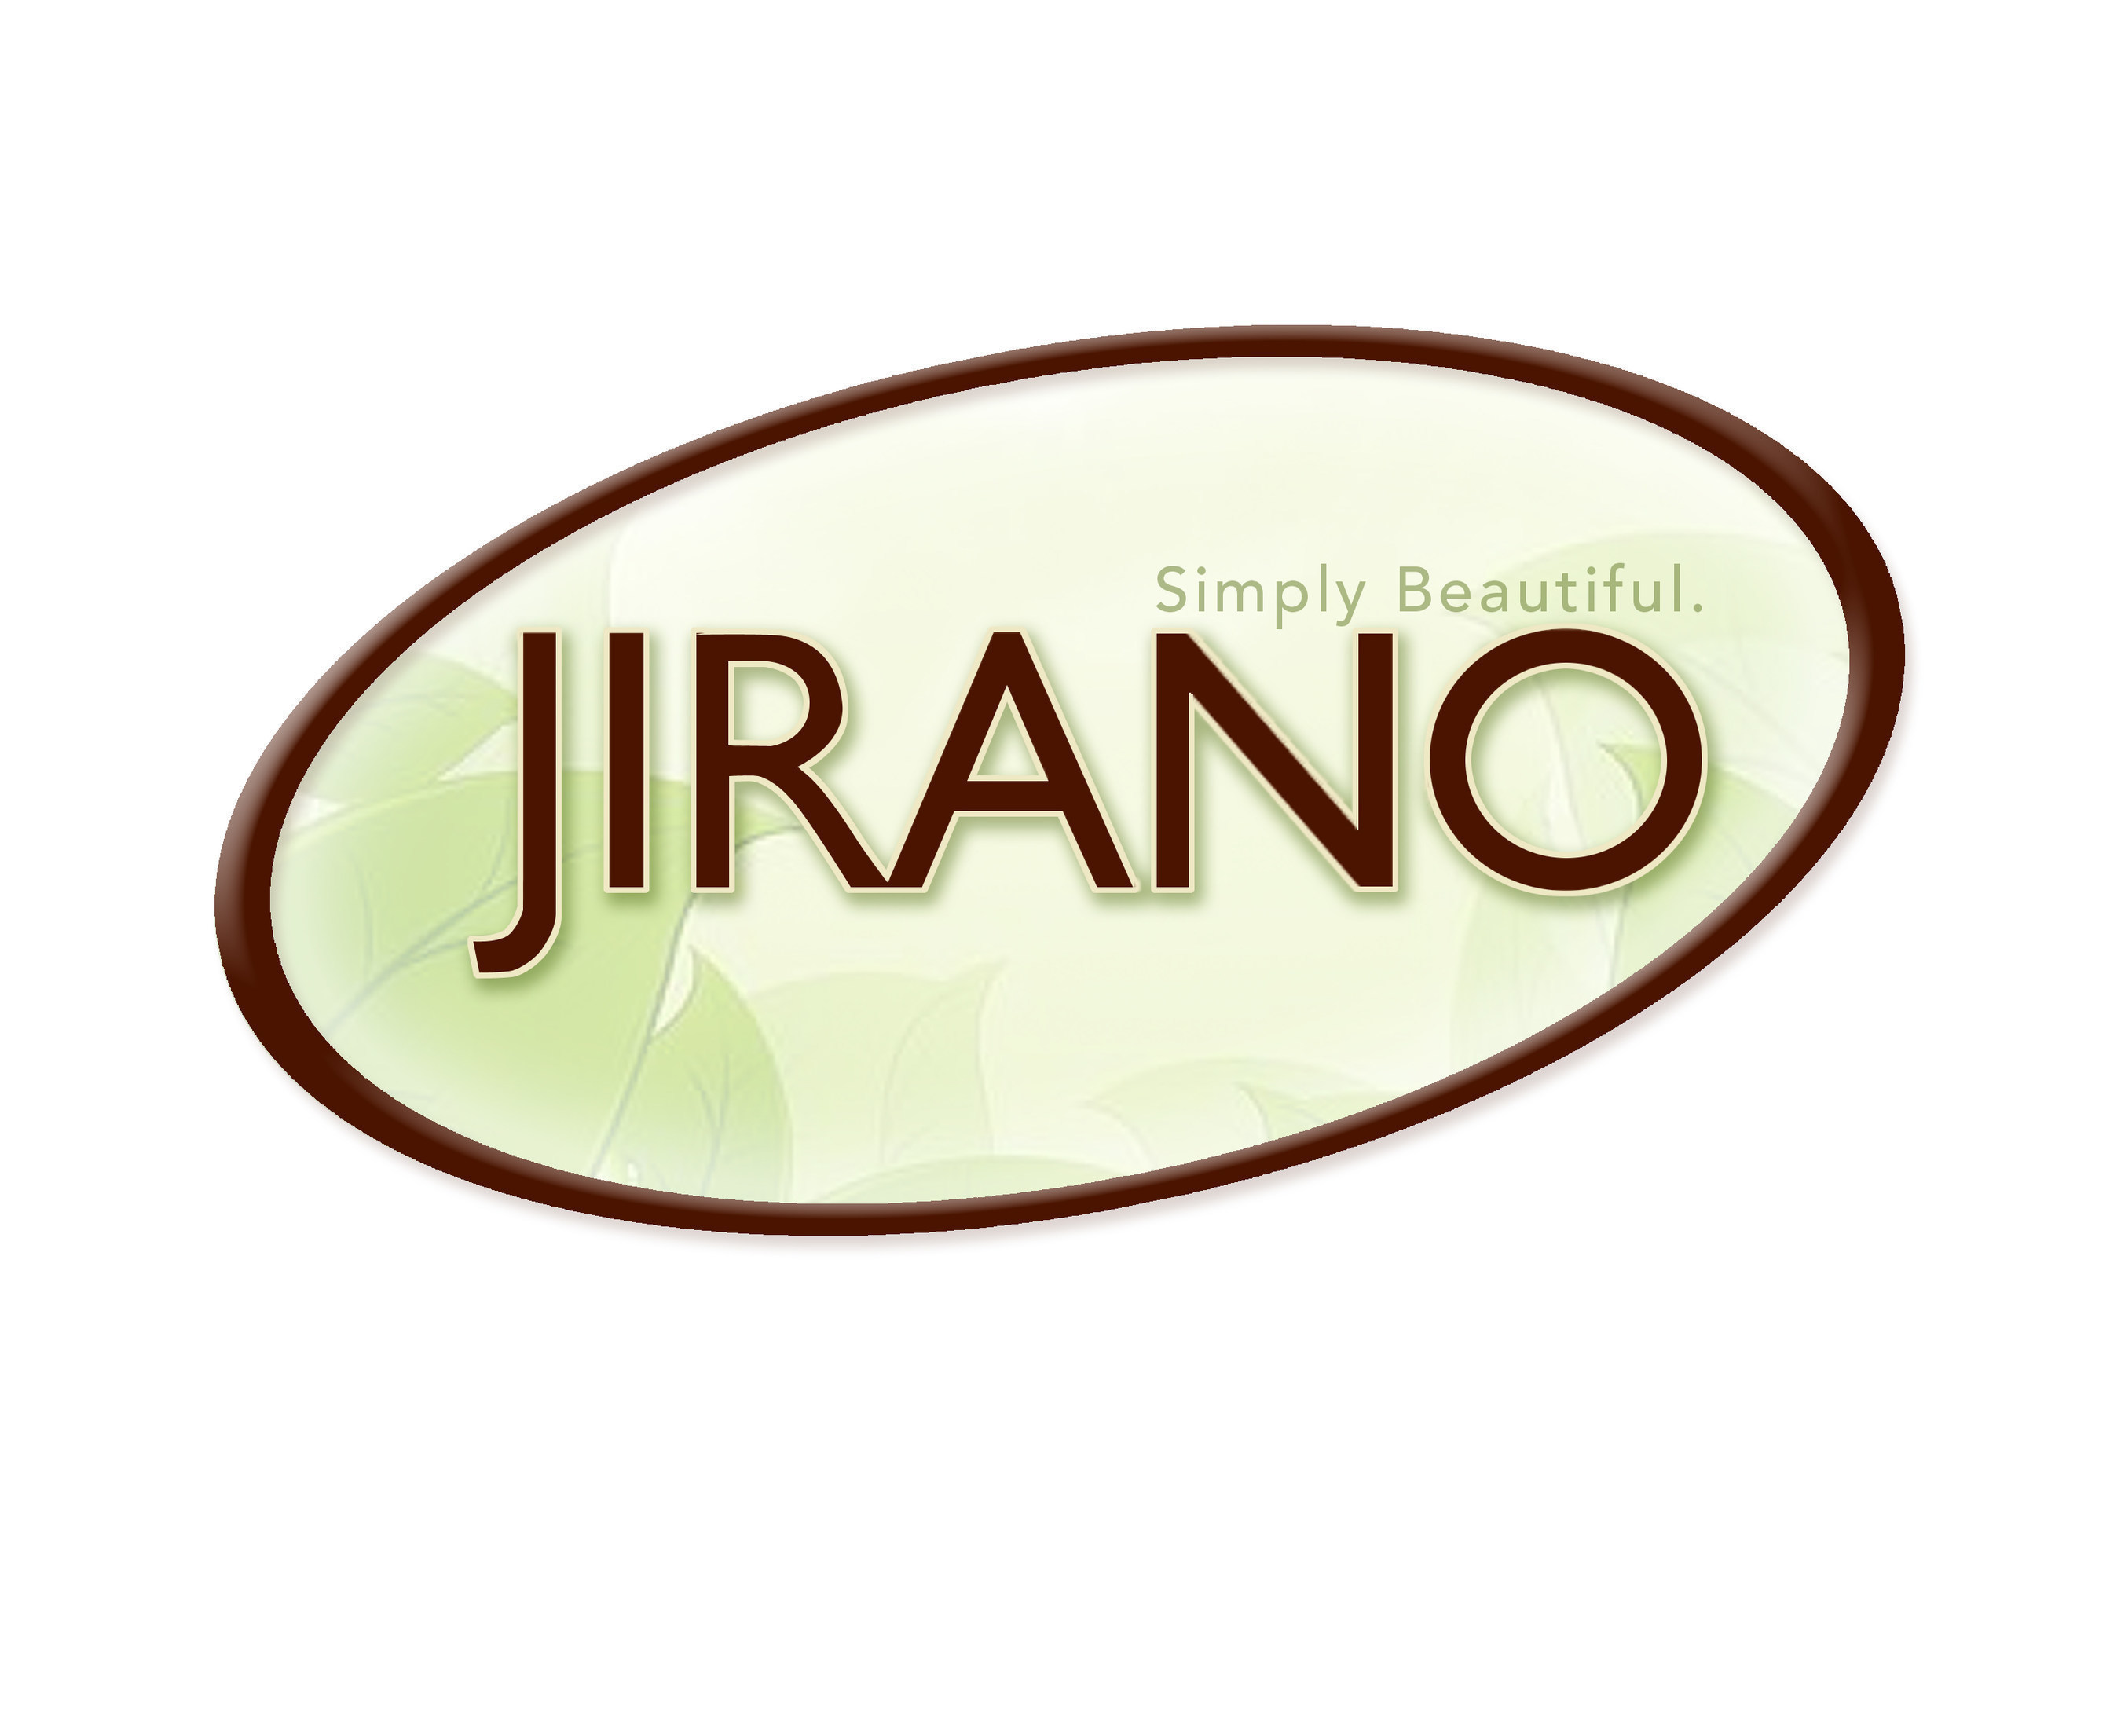 Jirano Offers Multi-Ethnic Hair Products for Naturally Curly Hair